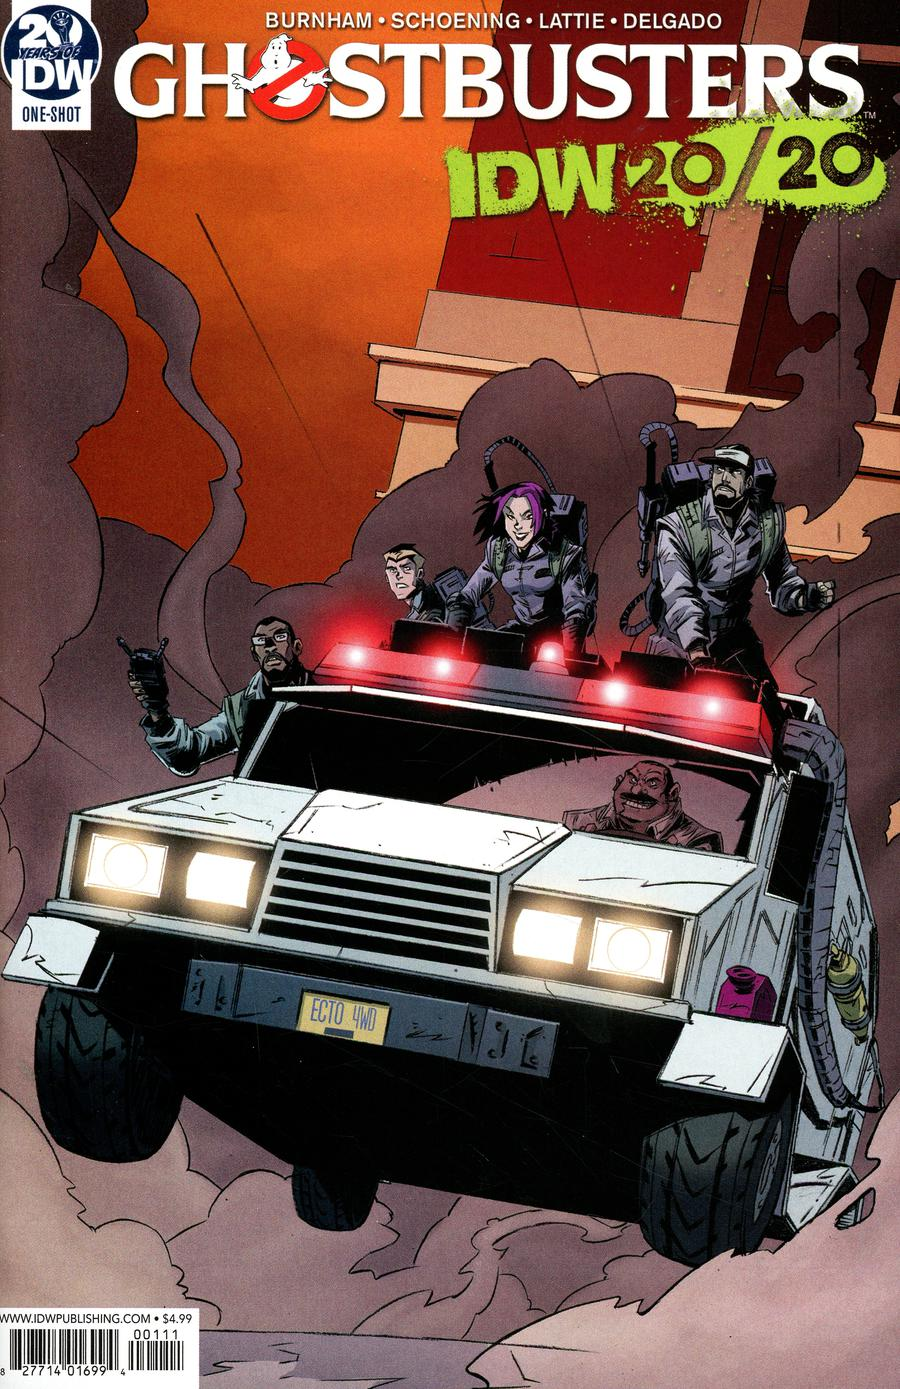 Ghostbusters IDW 20/20 Cover A Regular Dan Schoening Cover